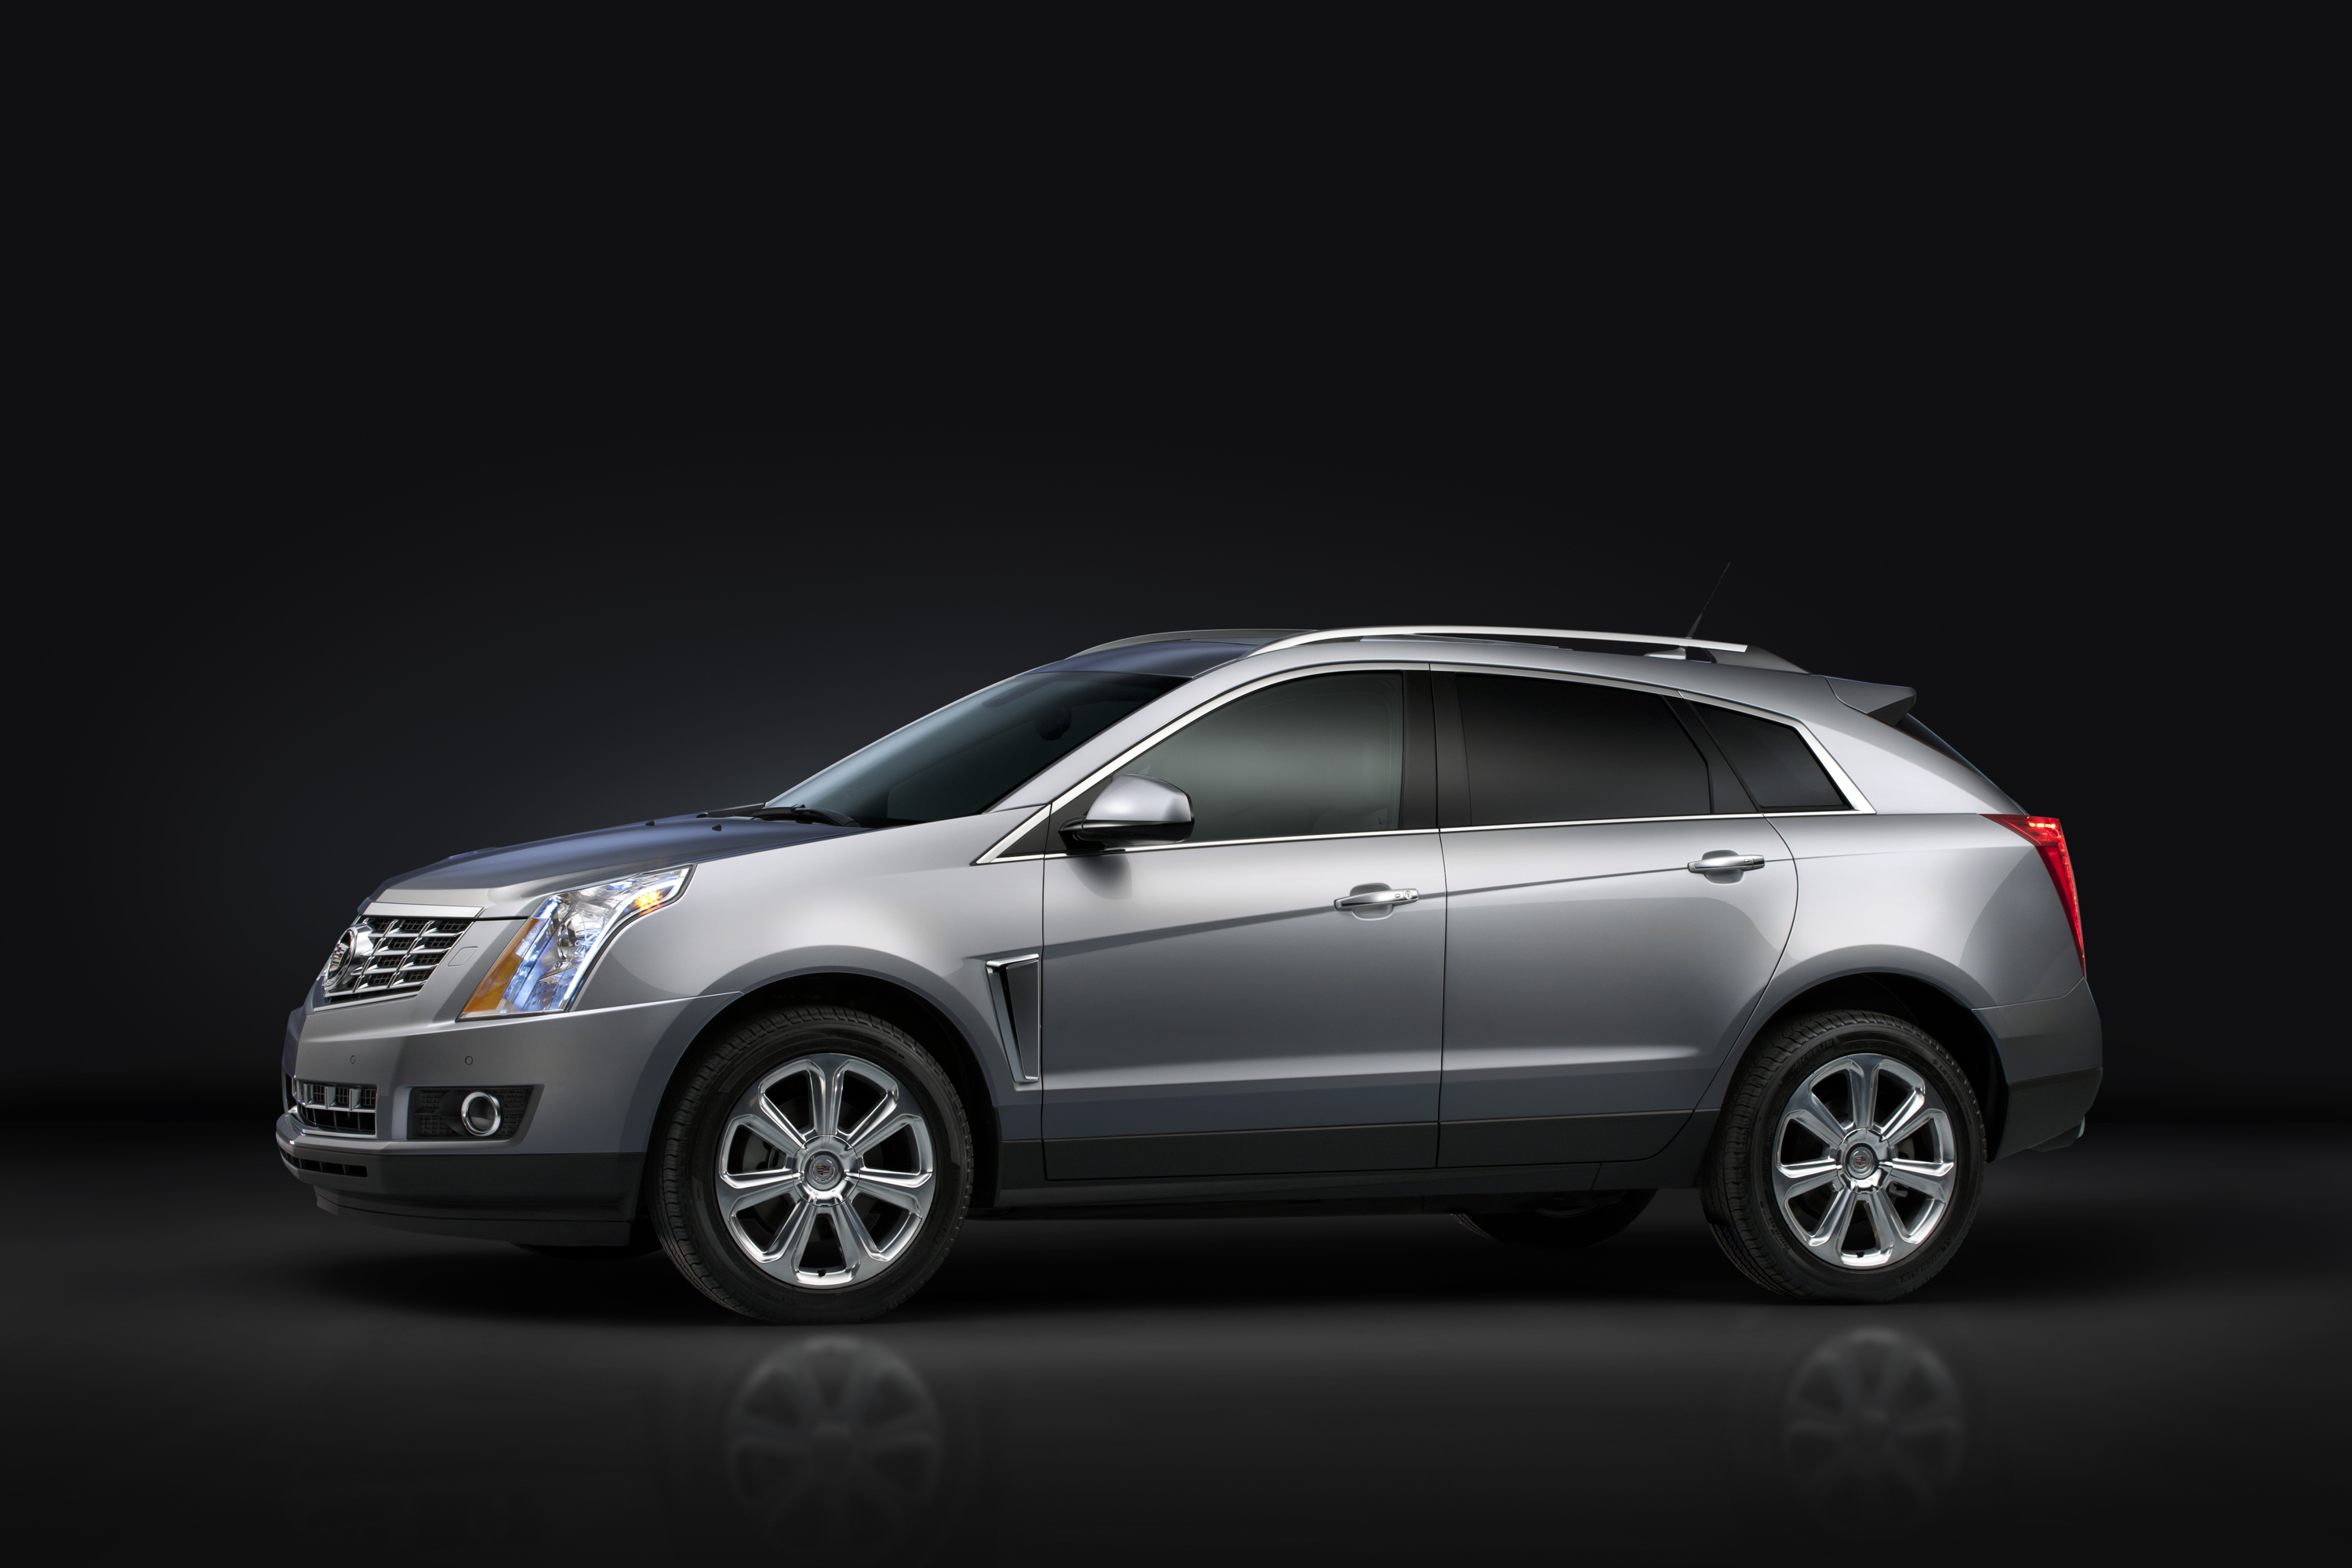 l awd driving cadillac suv review rapha srx created road test luxury collection with reviews